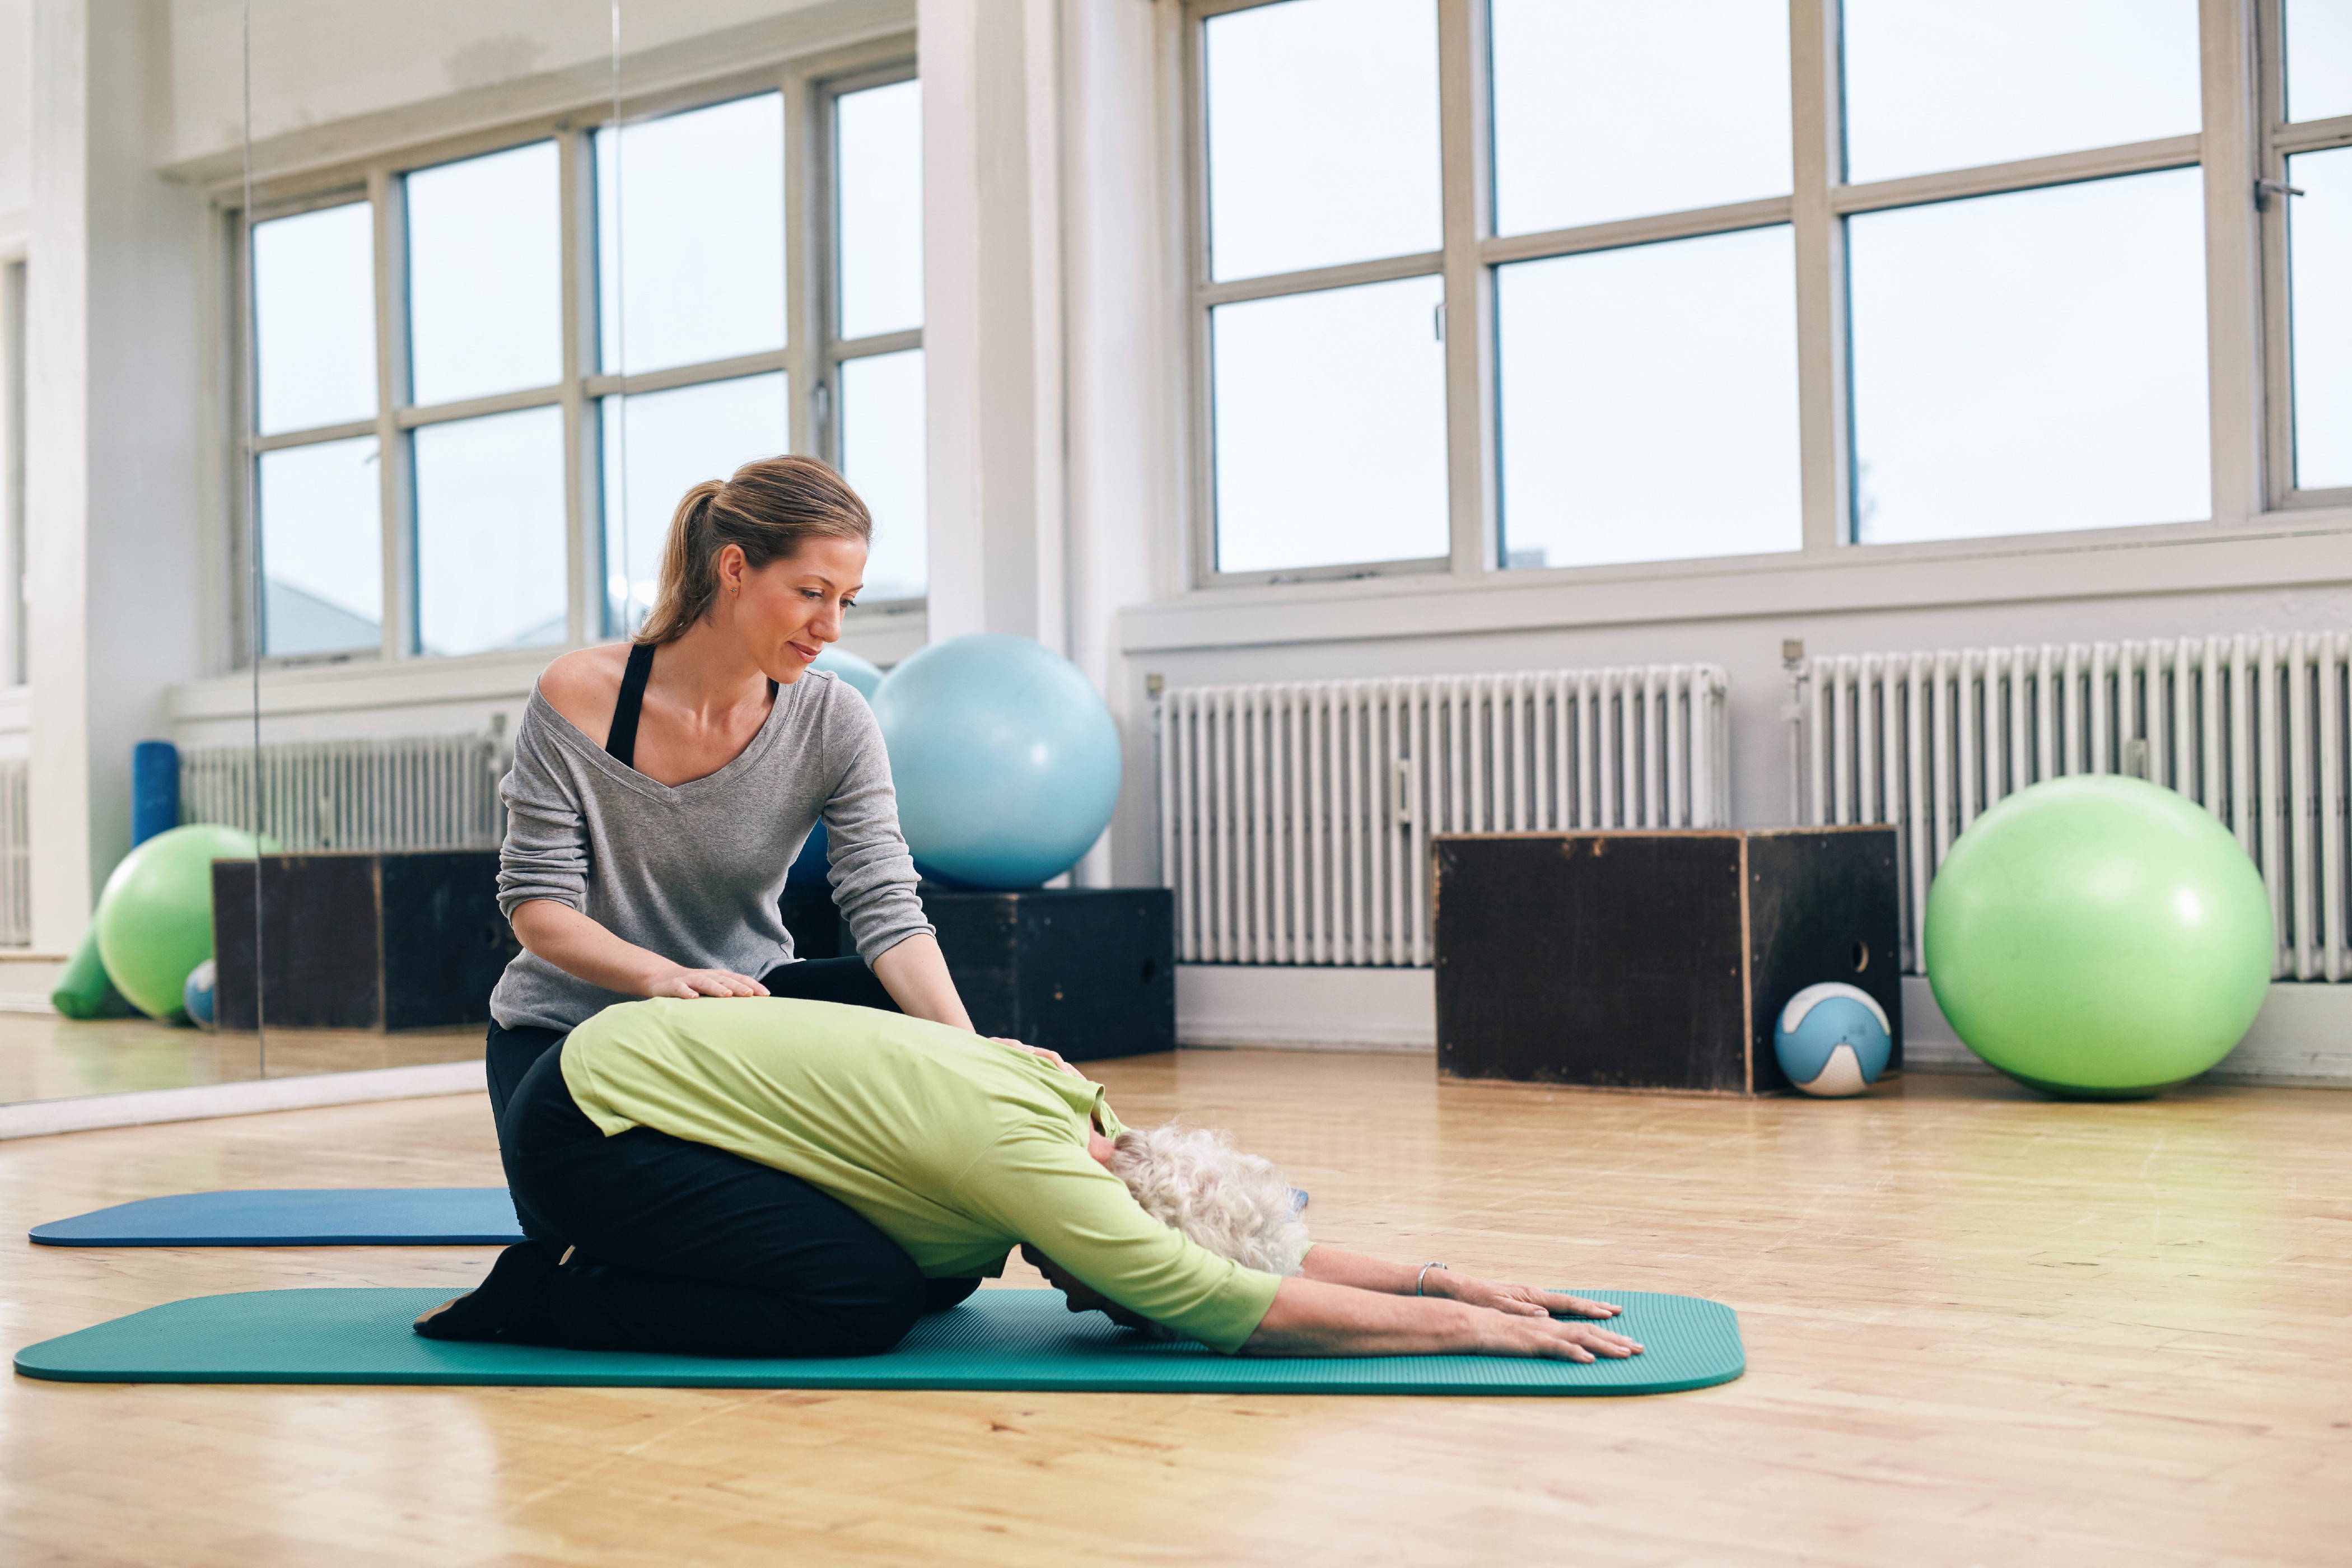 Online Yoga Class for 4-6 ppl.